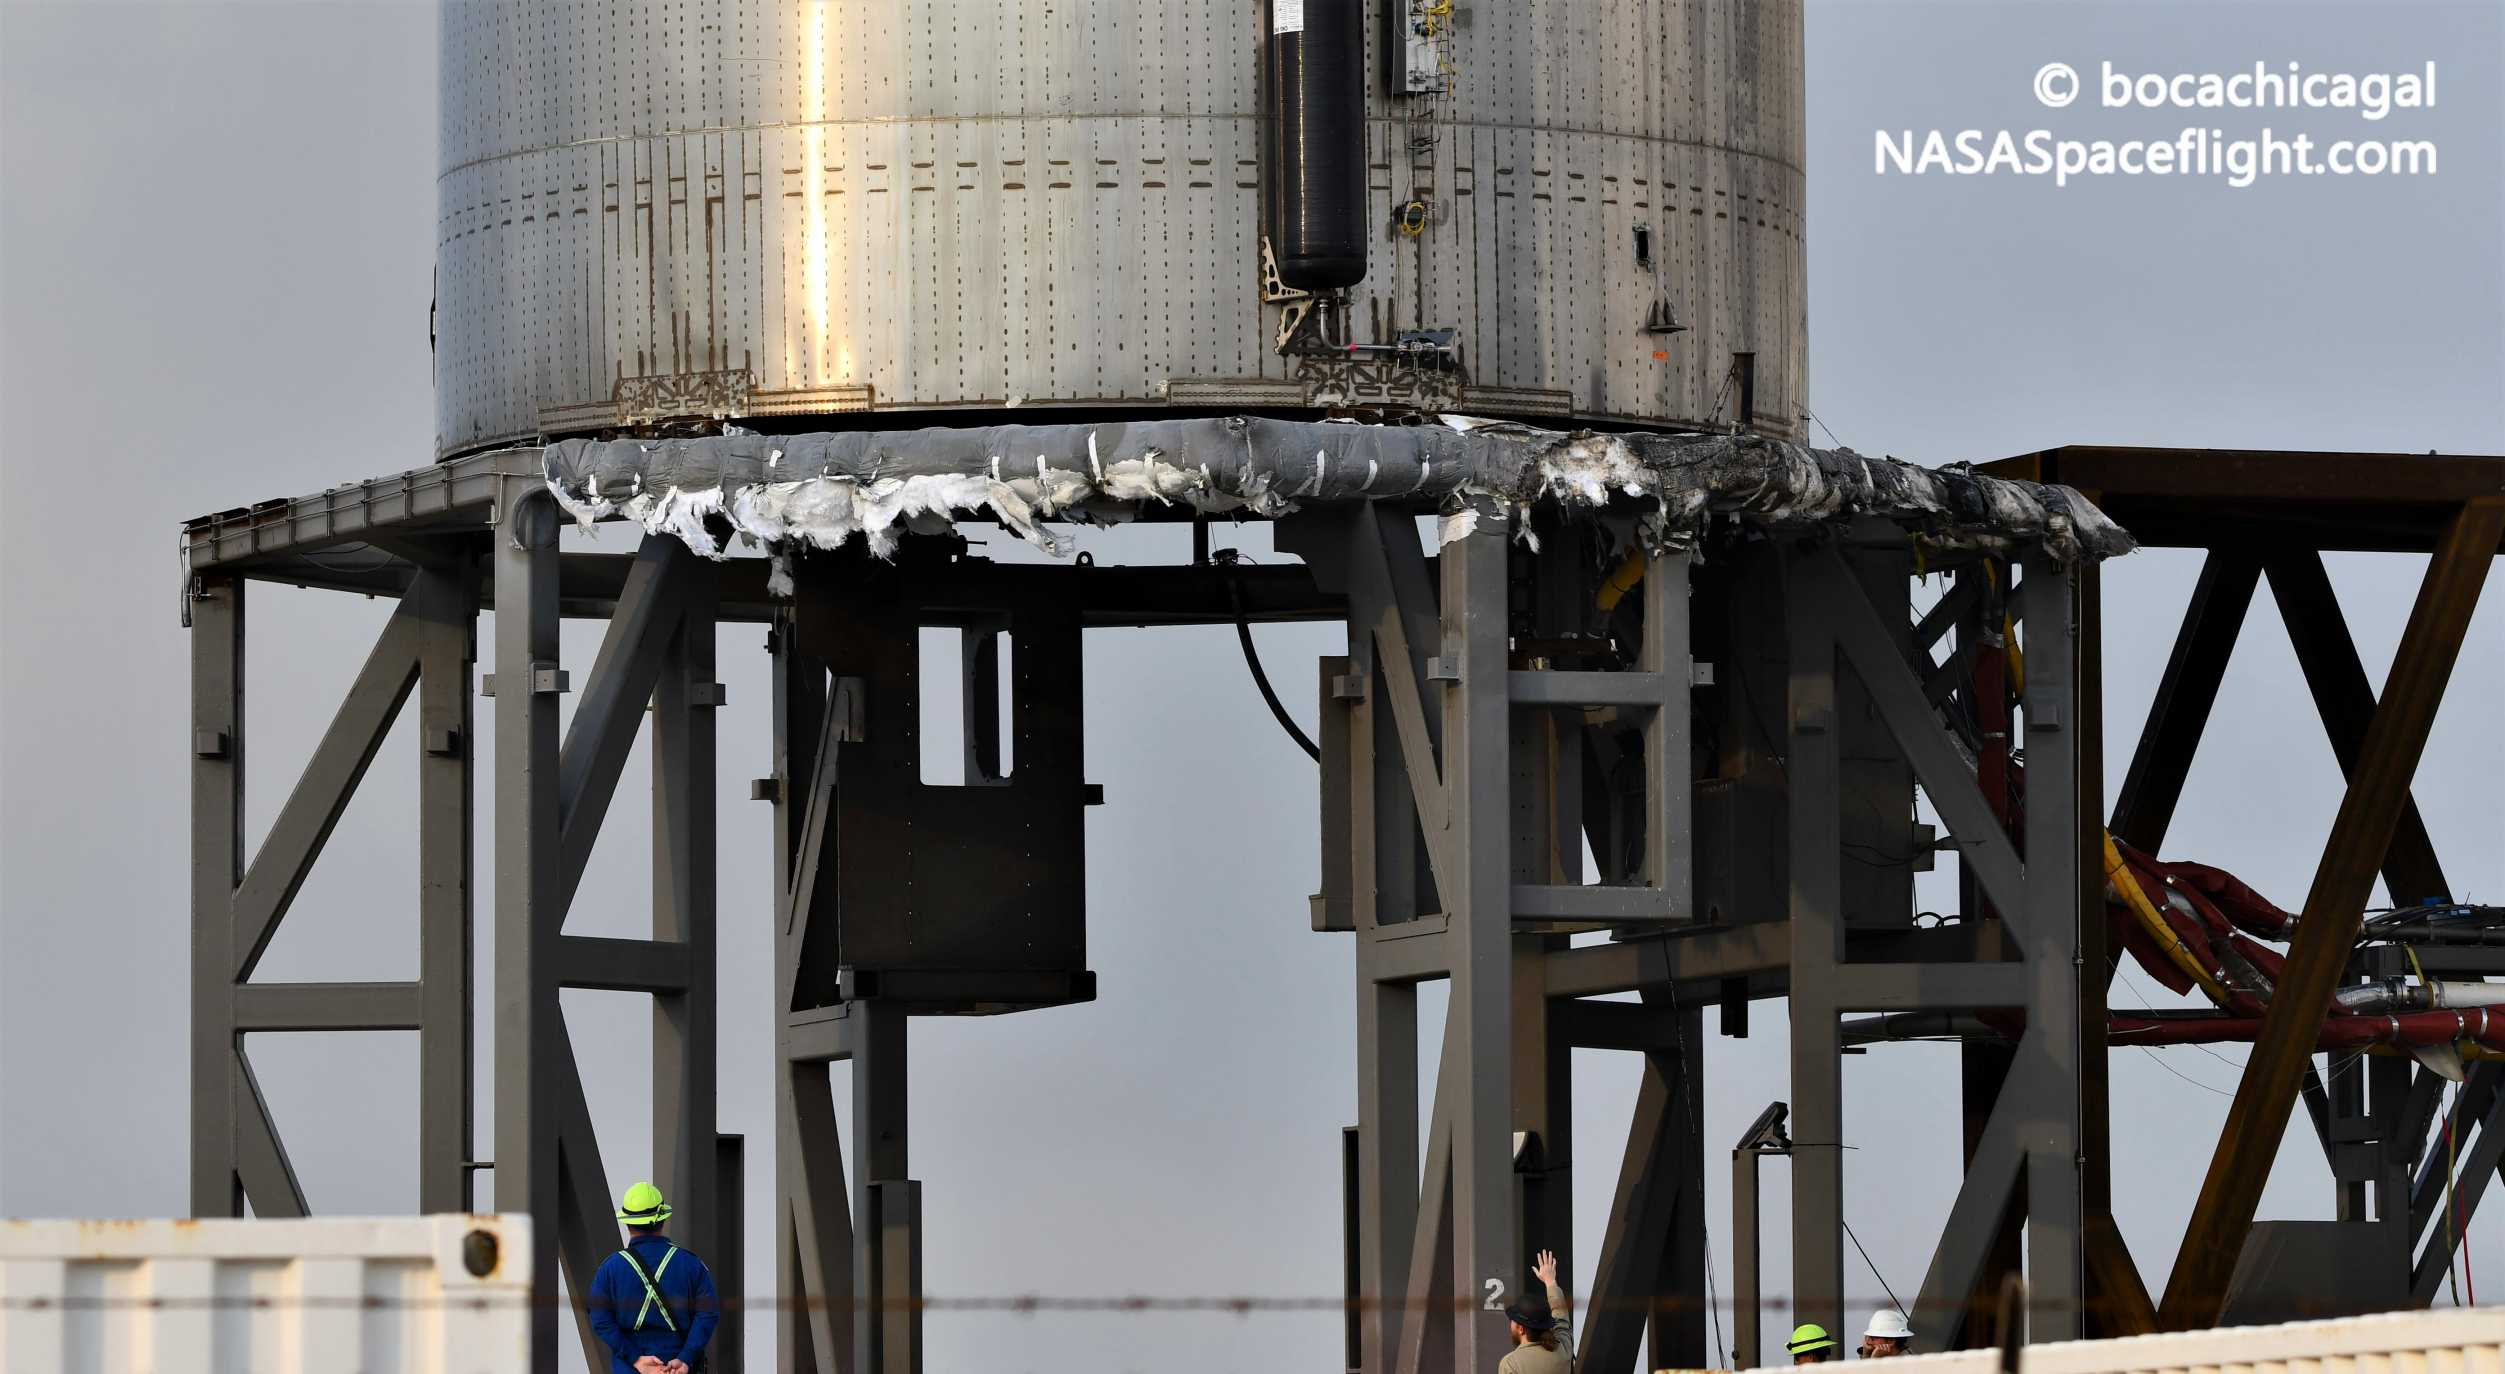 Spacex Starship Prototype Charred But Intact After